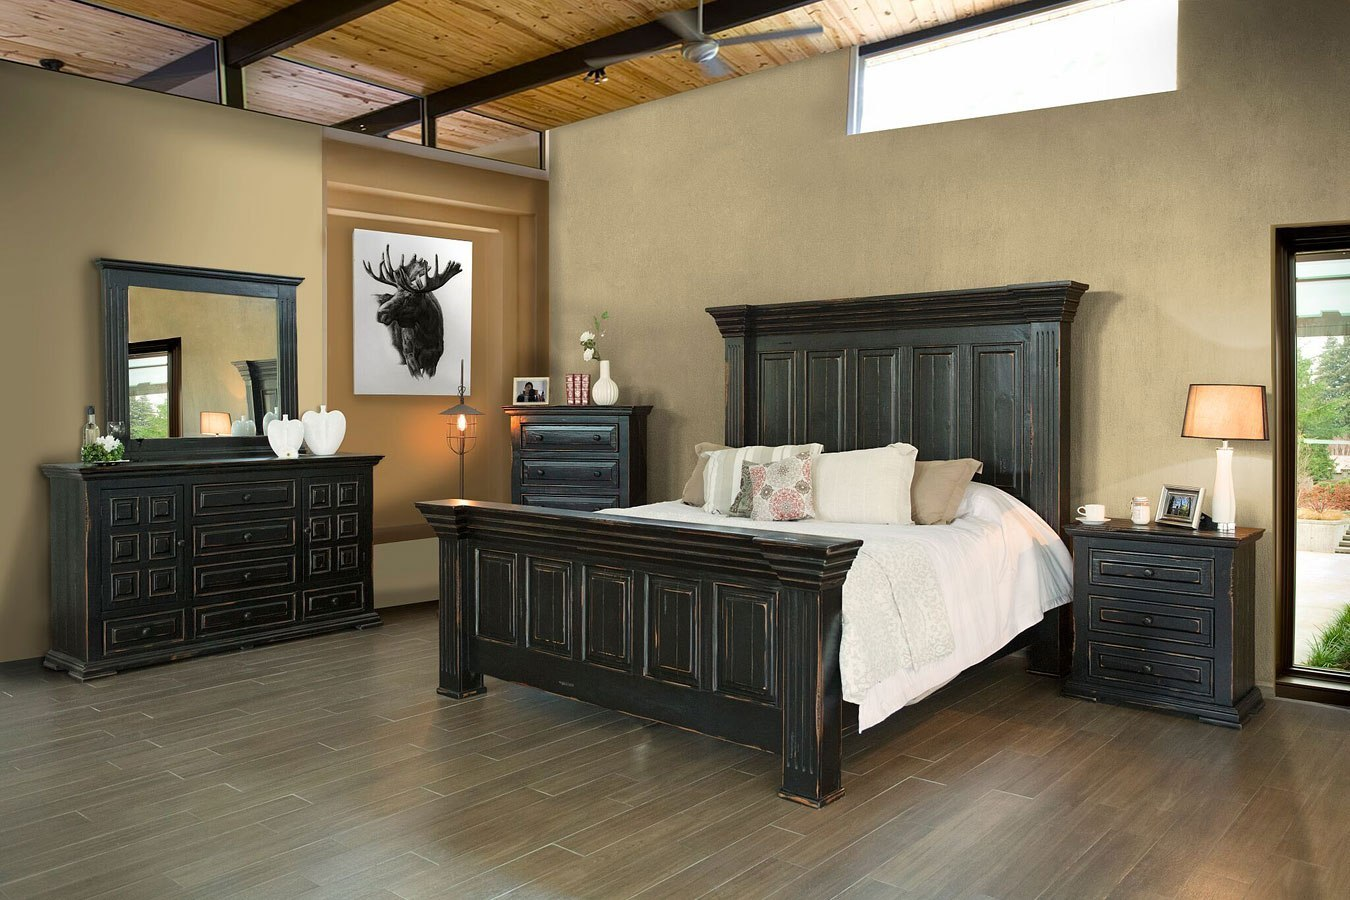 black bedroom furniture set | Terra Panel Bedroom Set (Black) by IFD Furniture ...